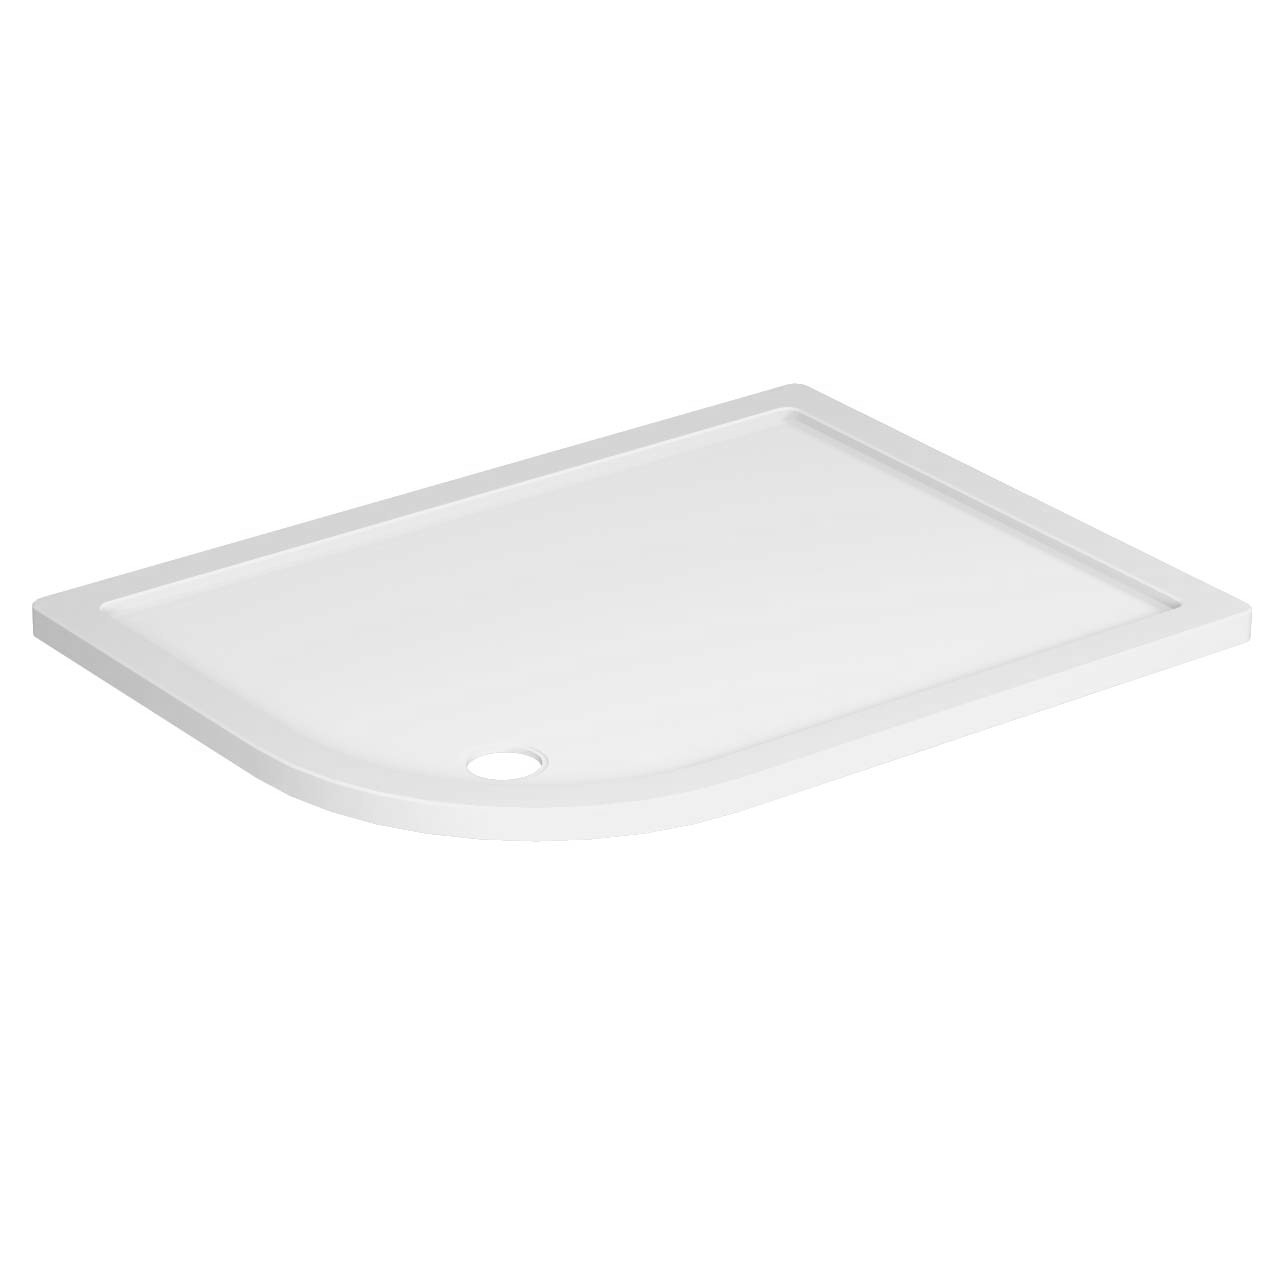 40mm Pearlstone 1200 x 900 Left Hand Offset Quadrant Shower Tray